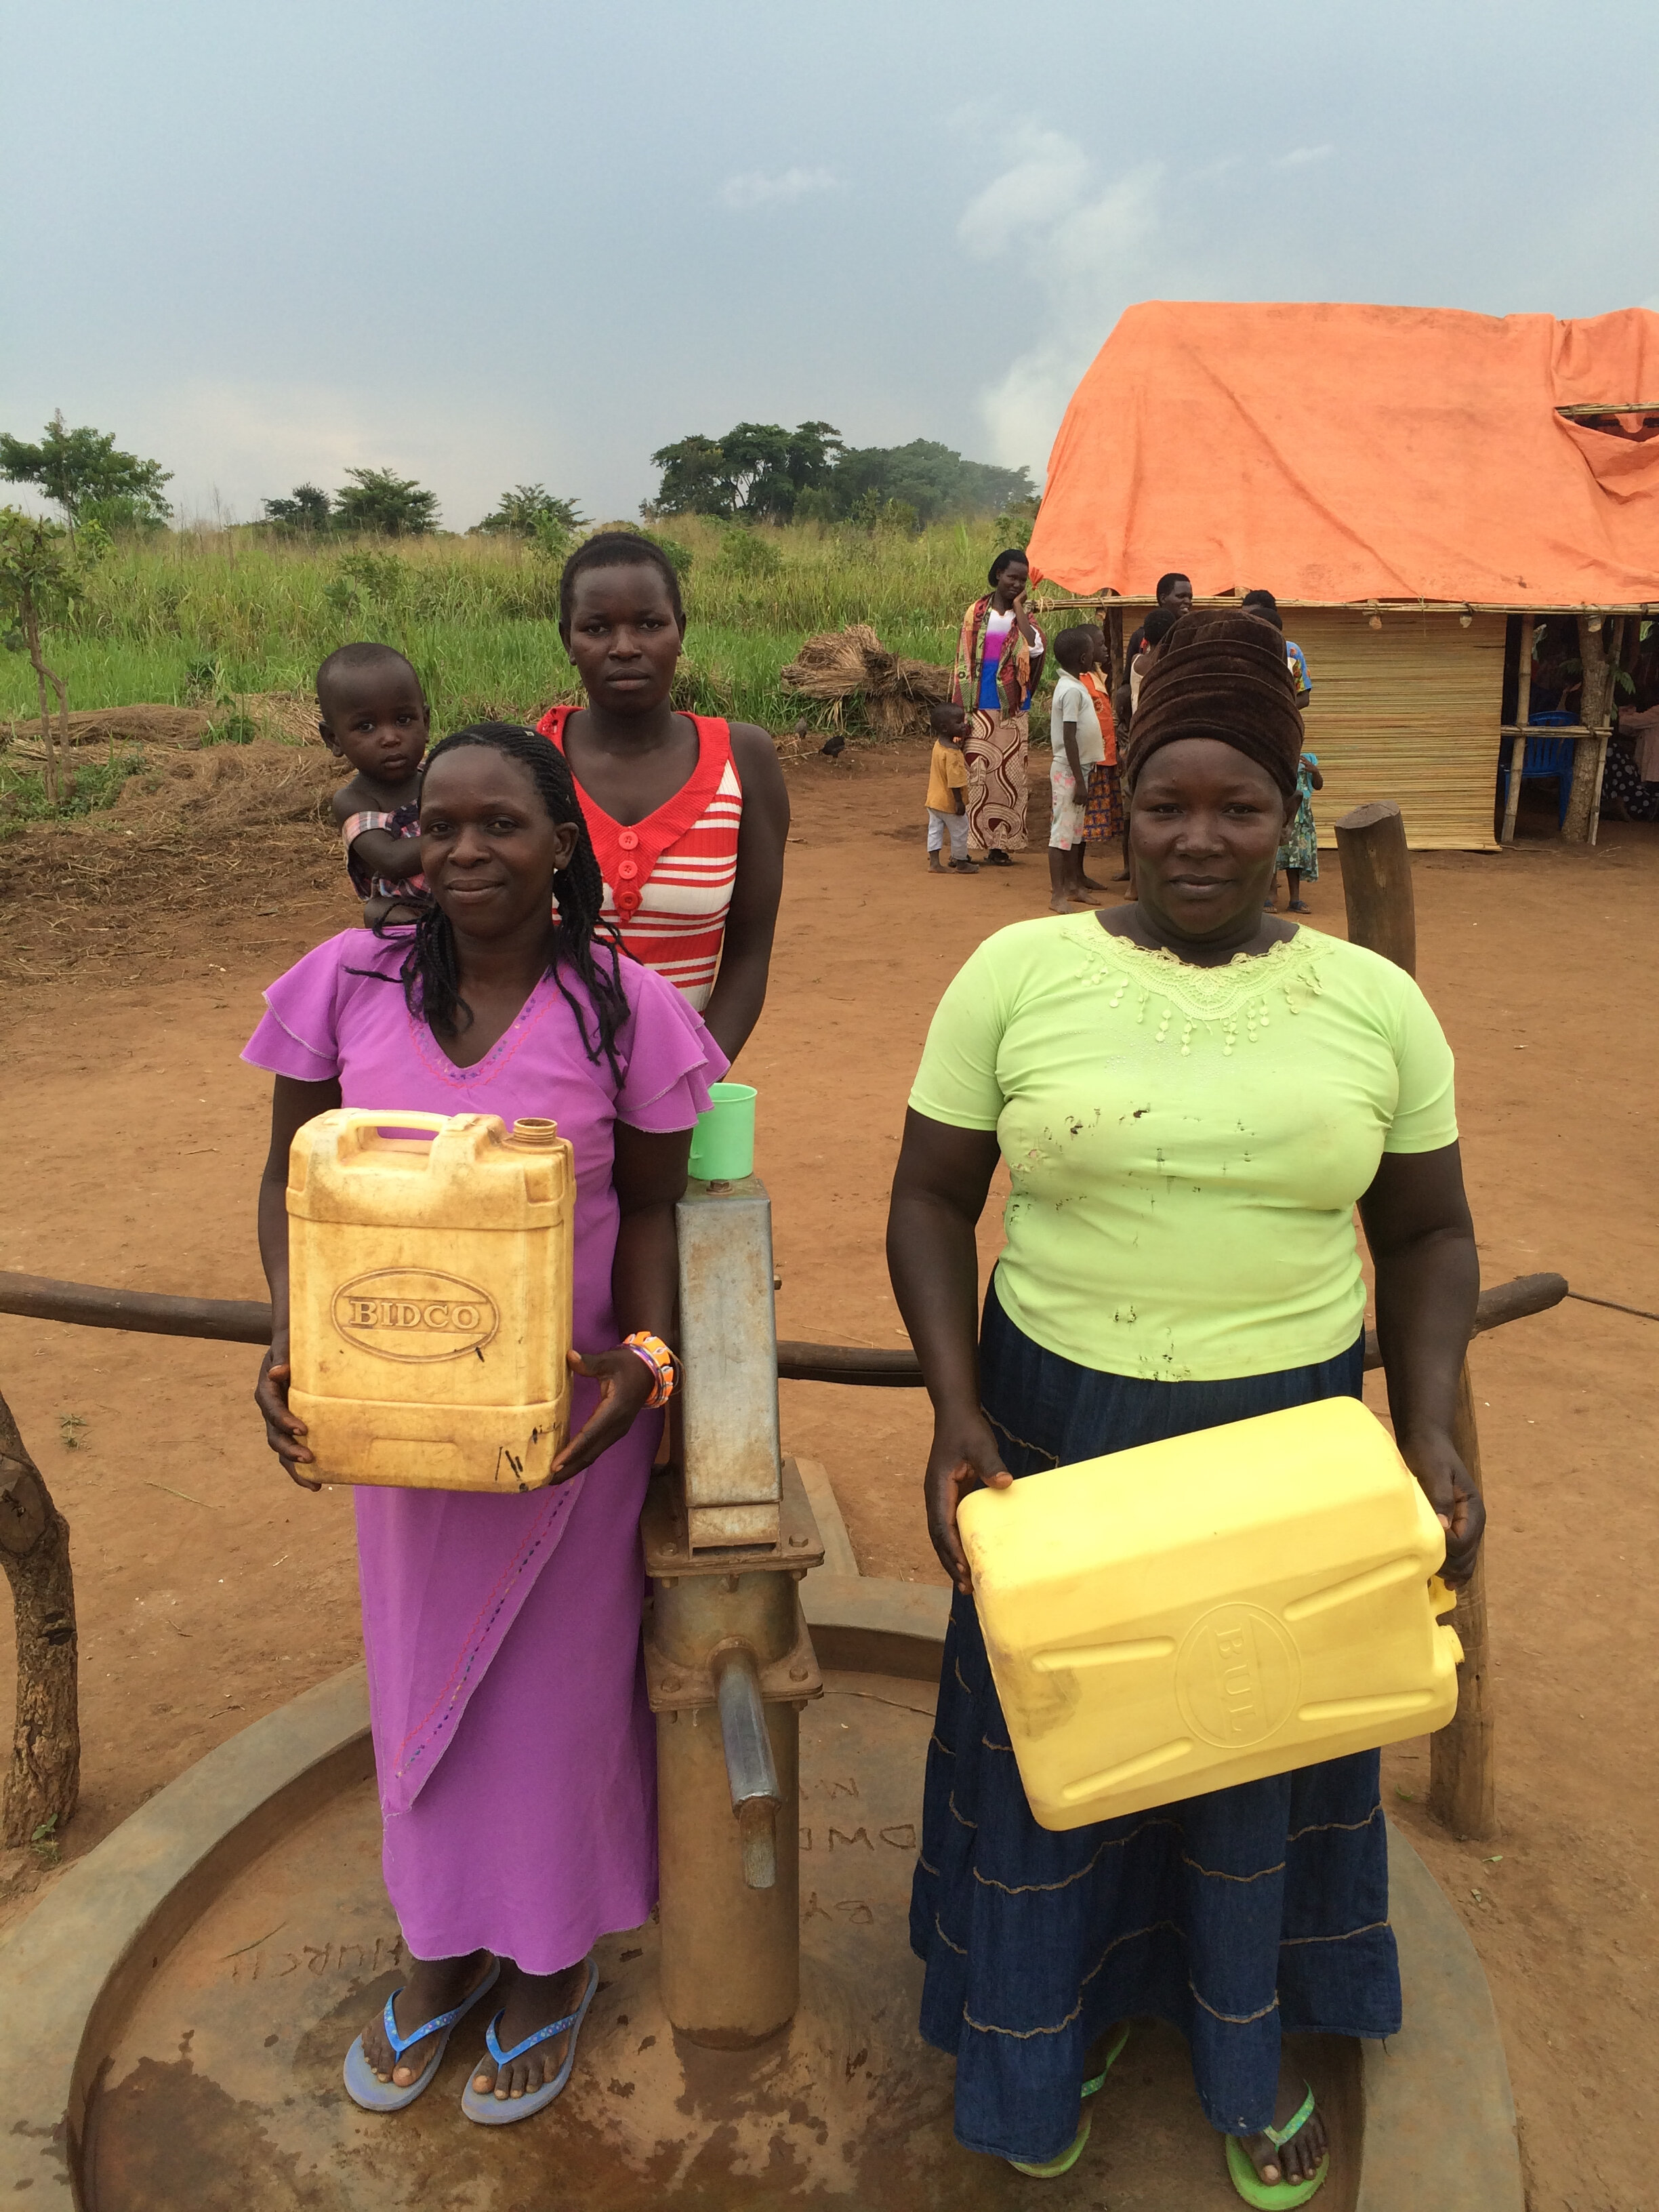 Some ladies fetching water from a new clean water well.